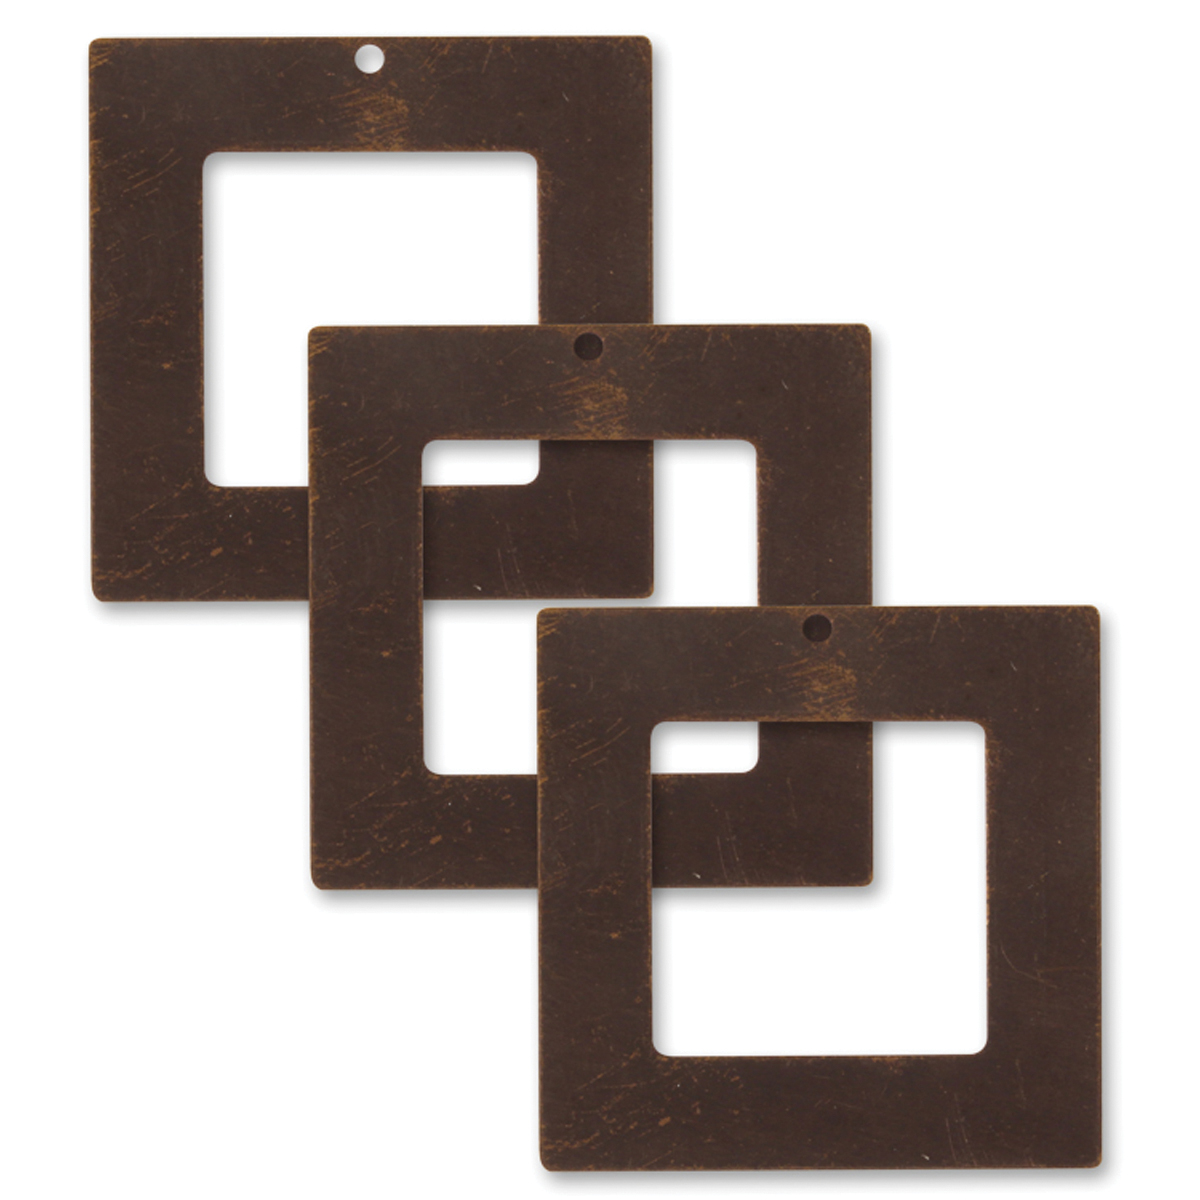 Square Frm-vintaj Metal Accent